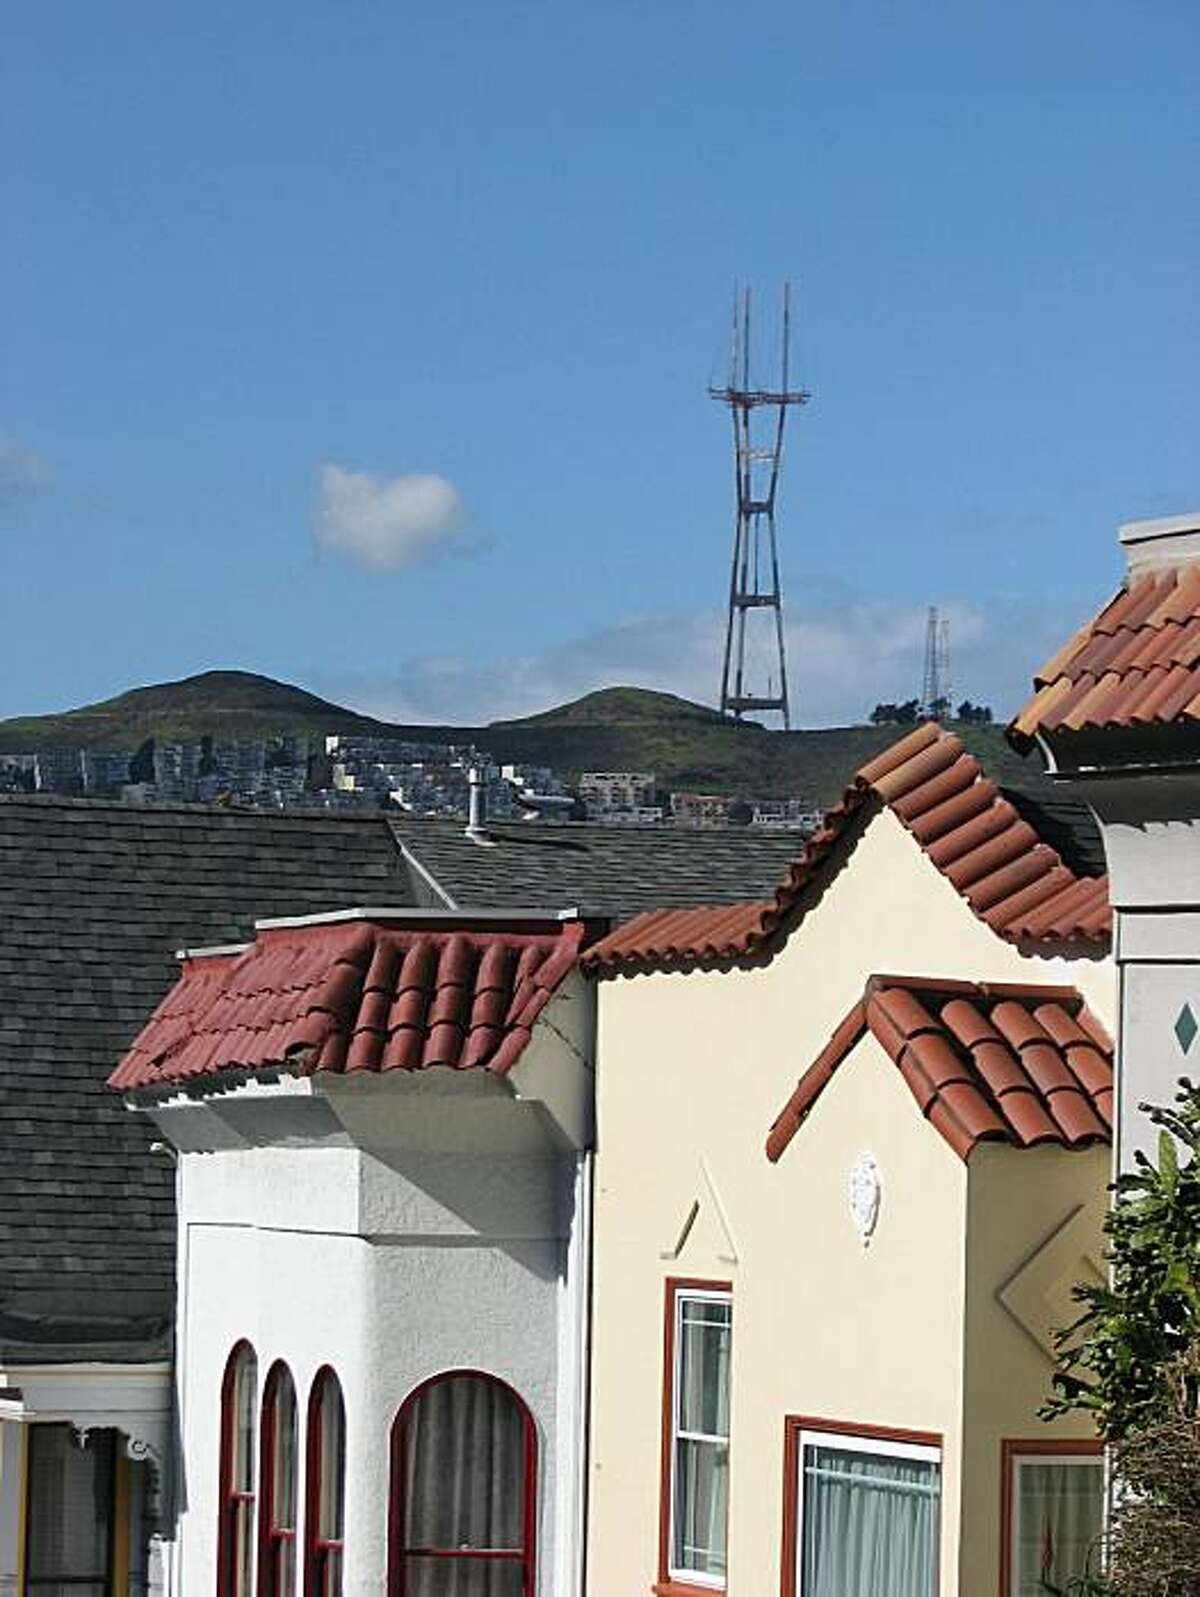 Sutro Tower may not be everyone's cup of architectural tea, but one noted San Francisco loves its iconic presence on the urban landscape.